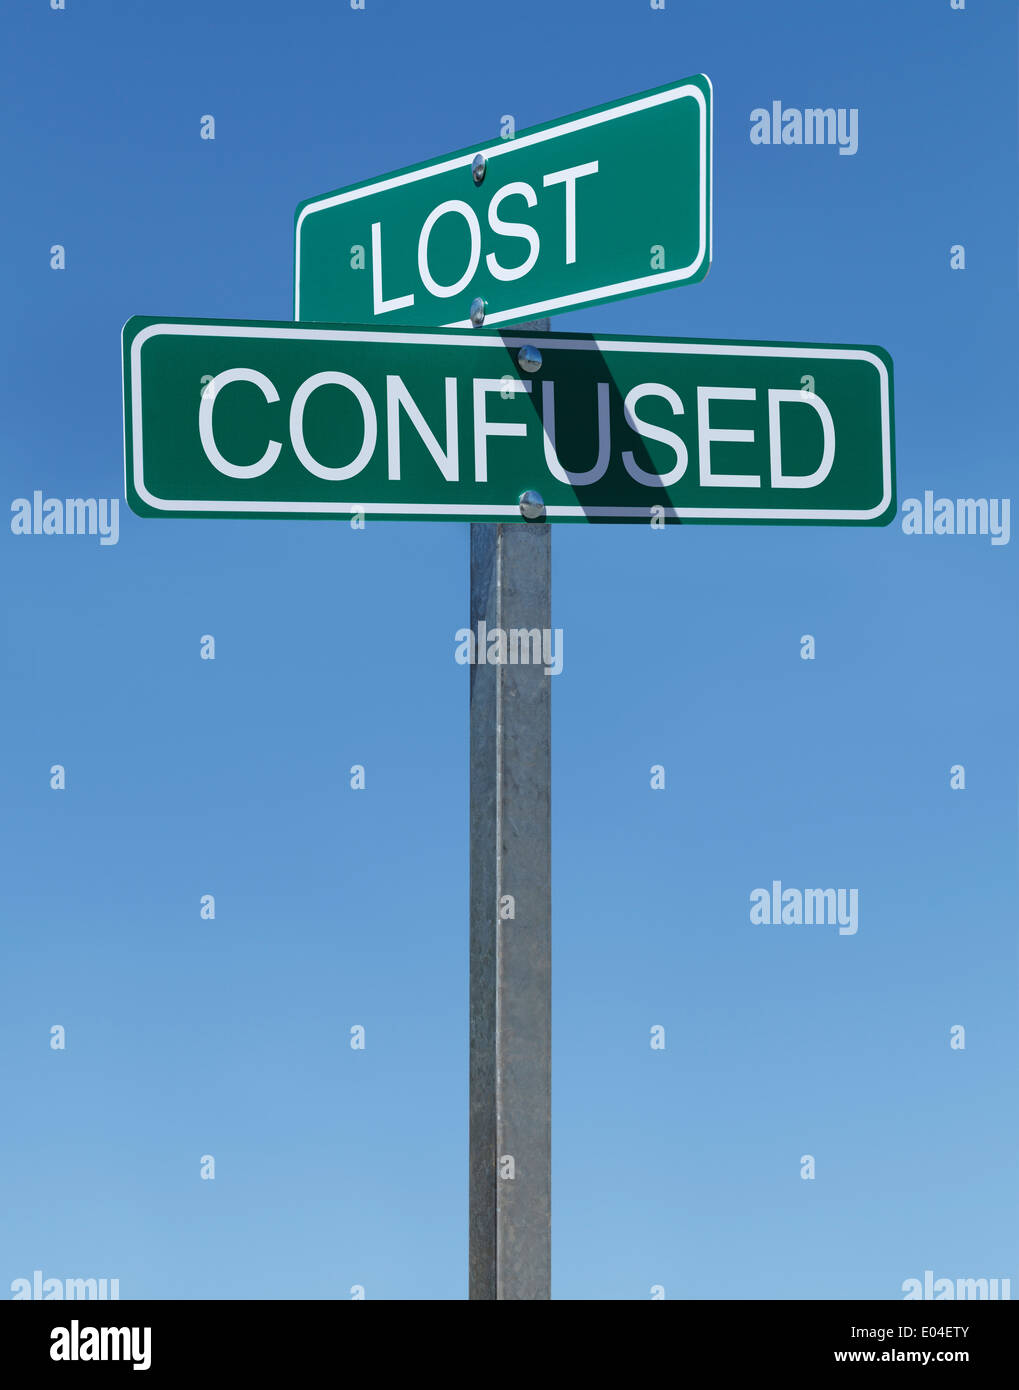 Two Green Street Signs Lost and Confused on Metal Pole with Blue Sky Background. - Stock Image